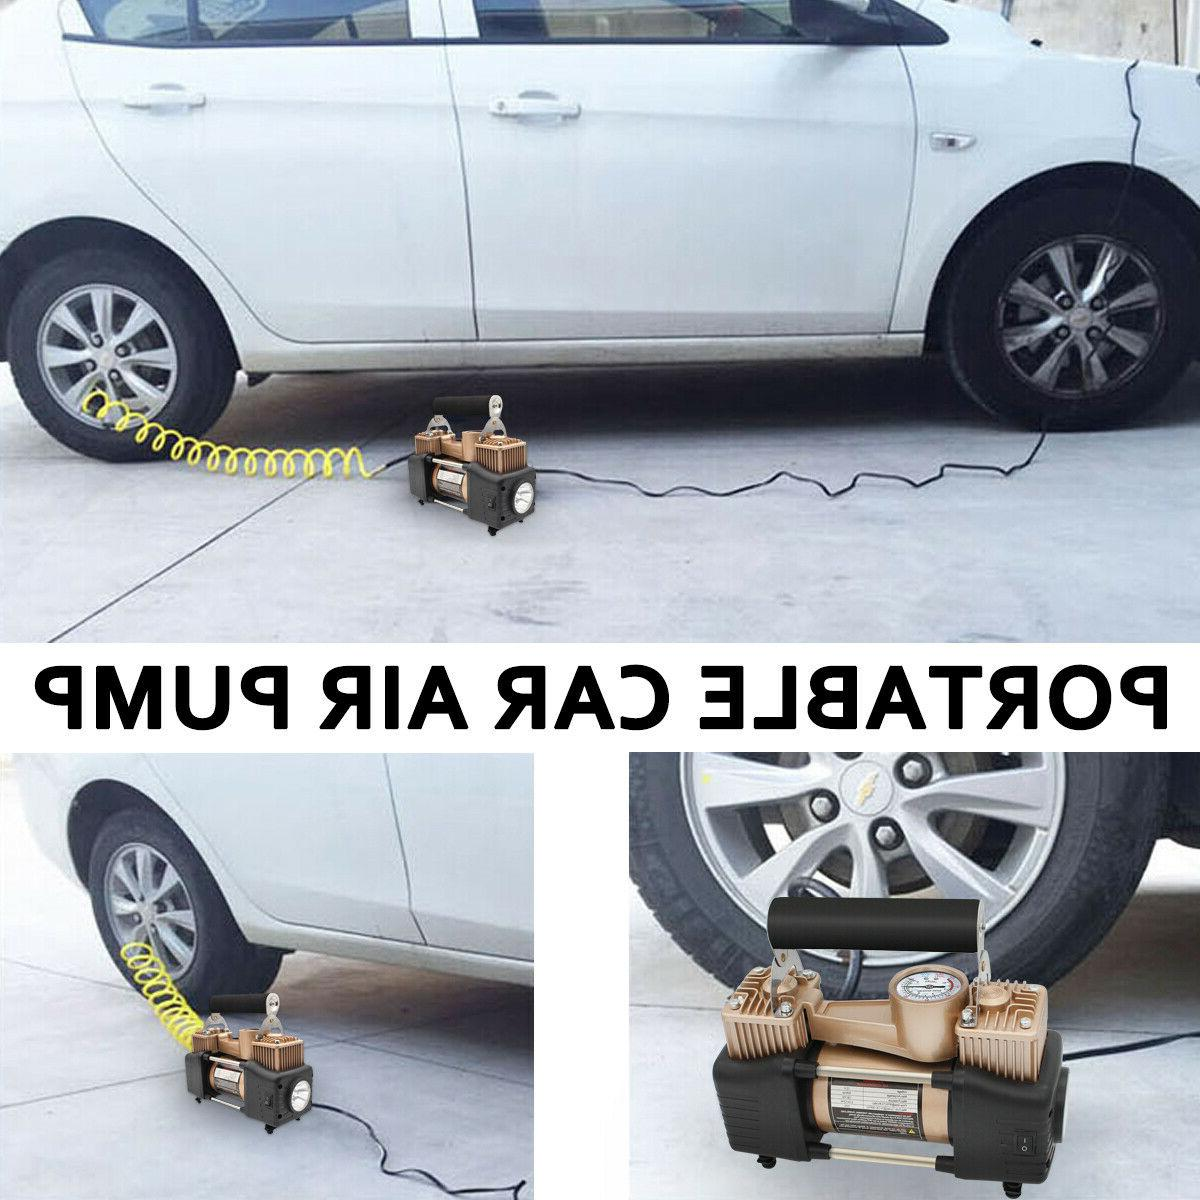 HEAVY Compressor Tire Pump Inflator Double